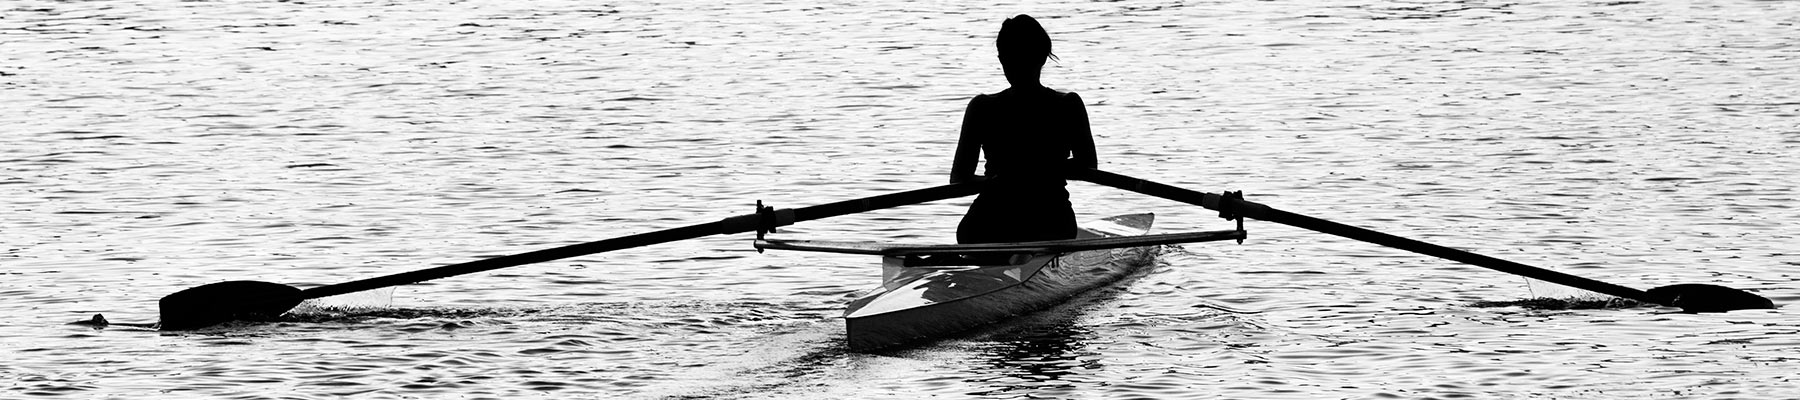 slider-female-lonely-rower